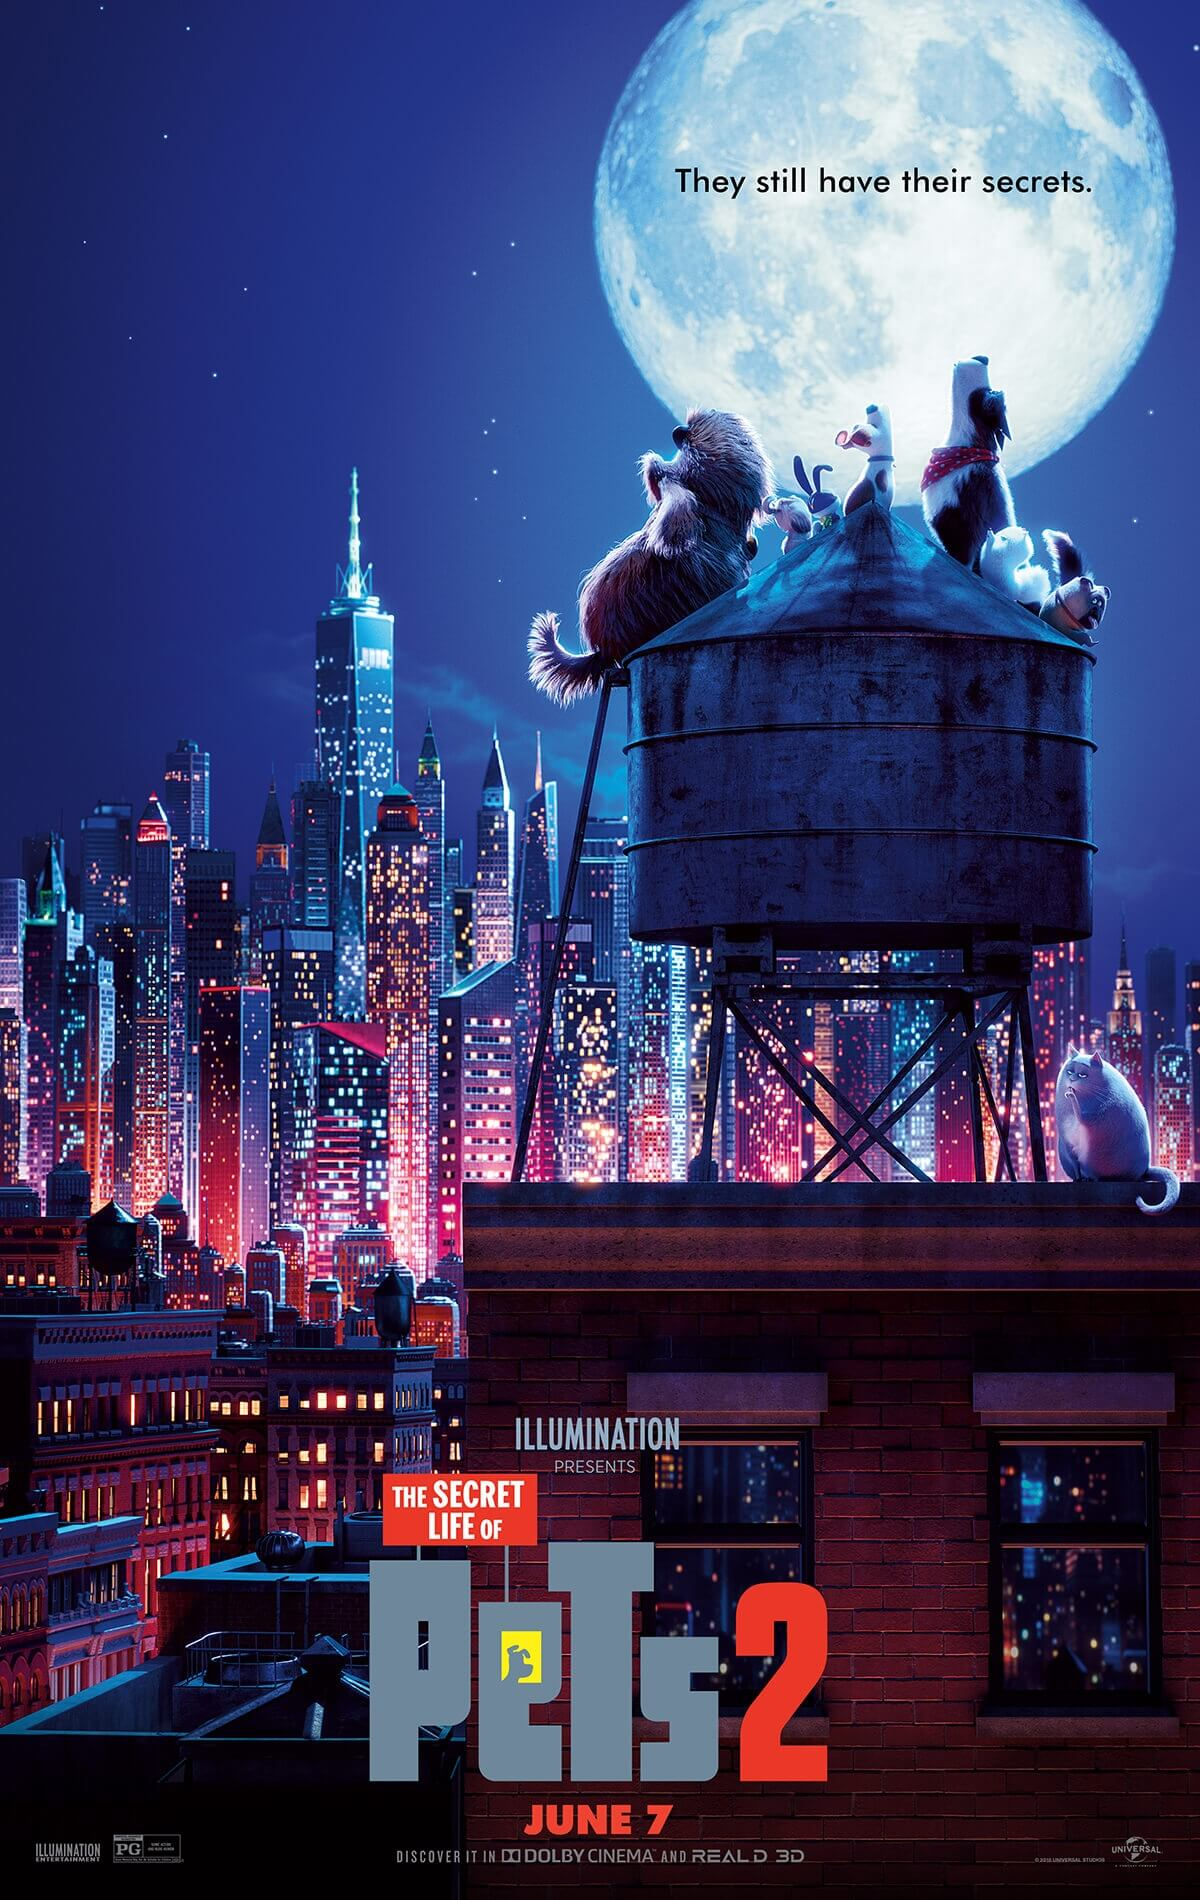 The Secret Life of Pets 2 offical poster